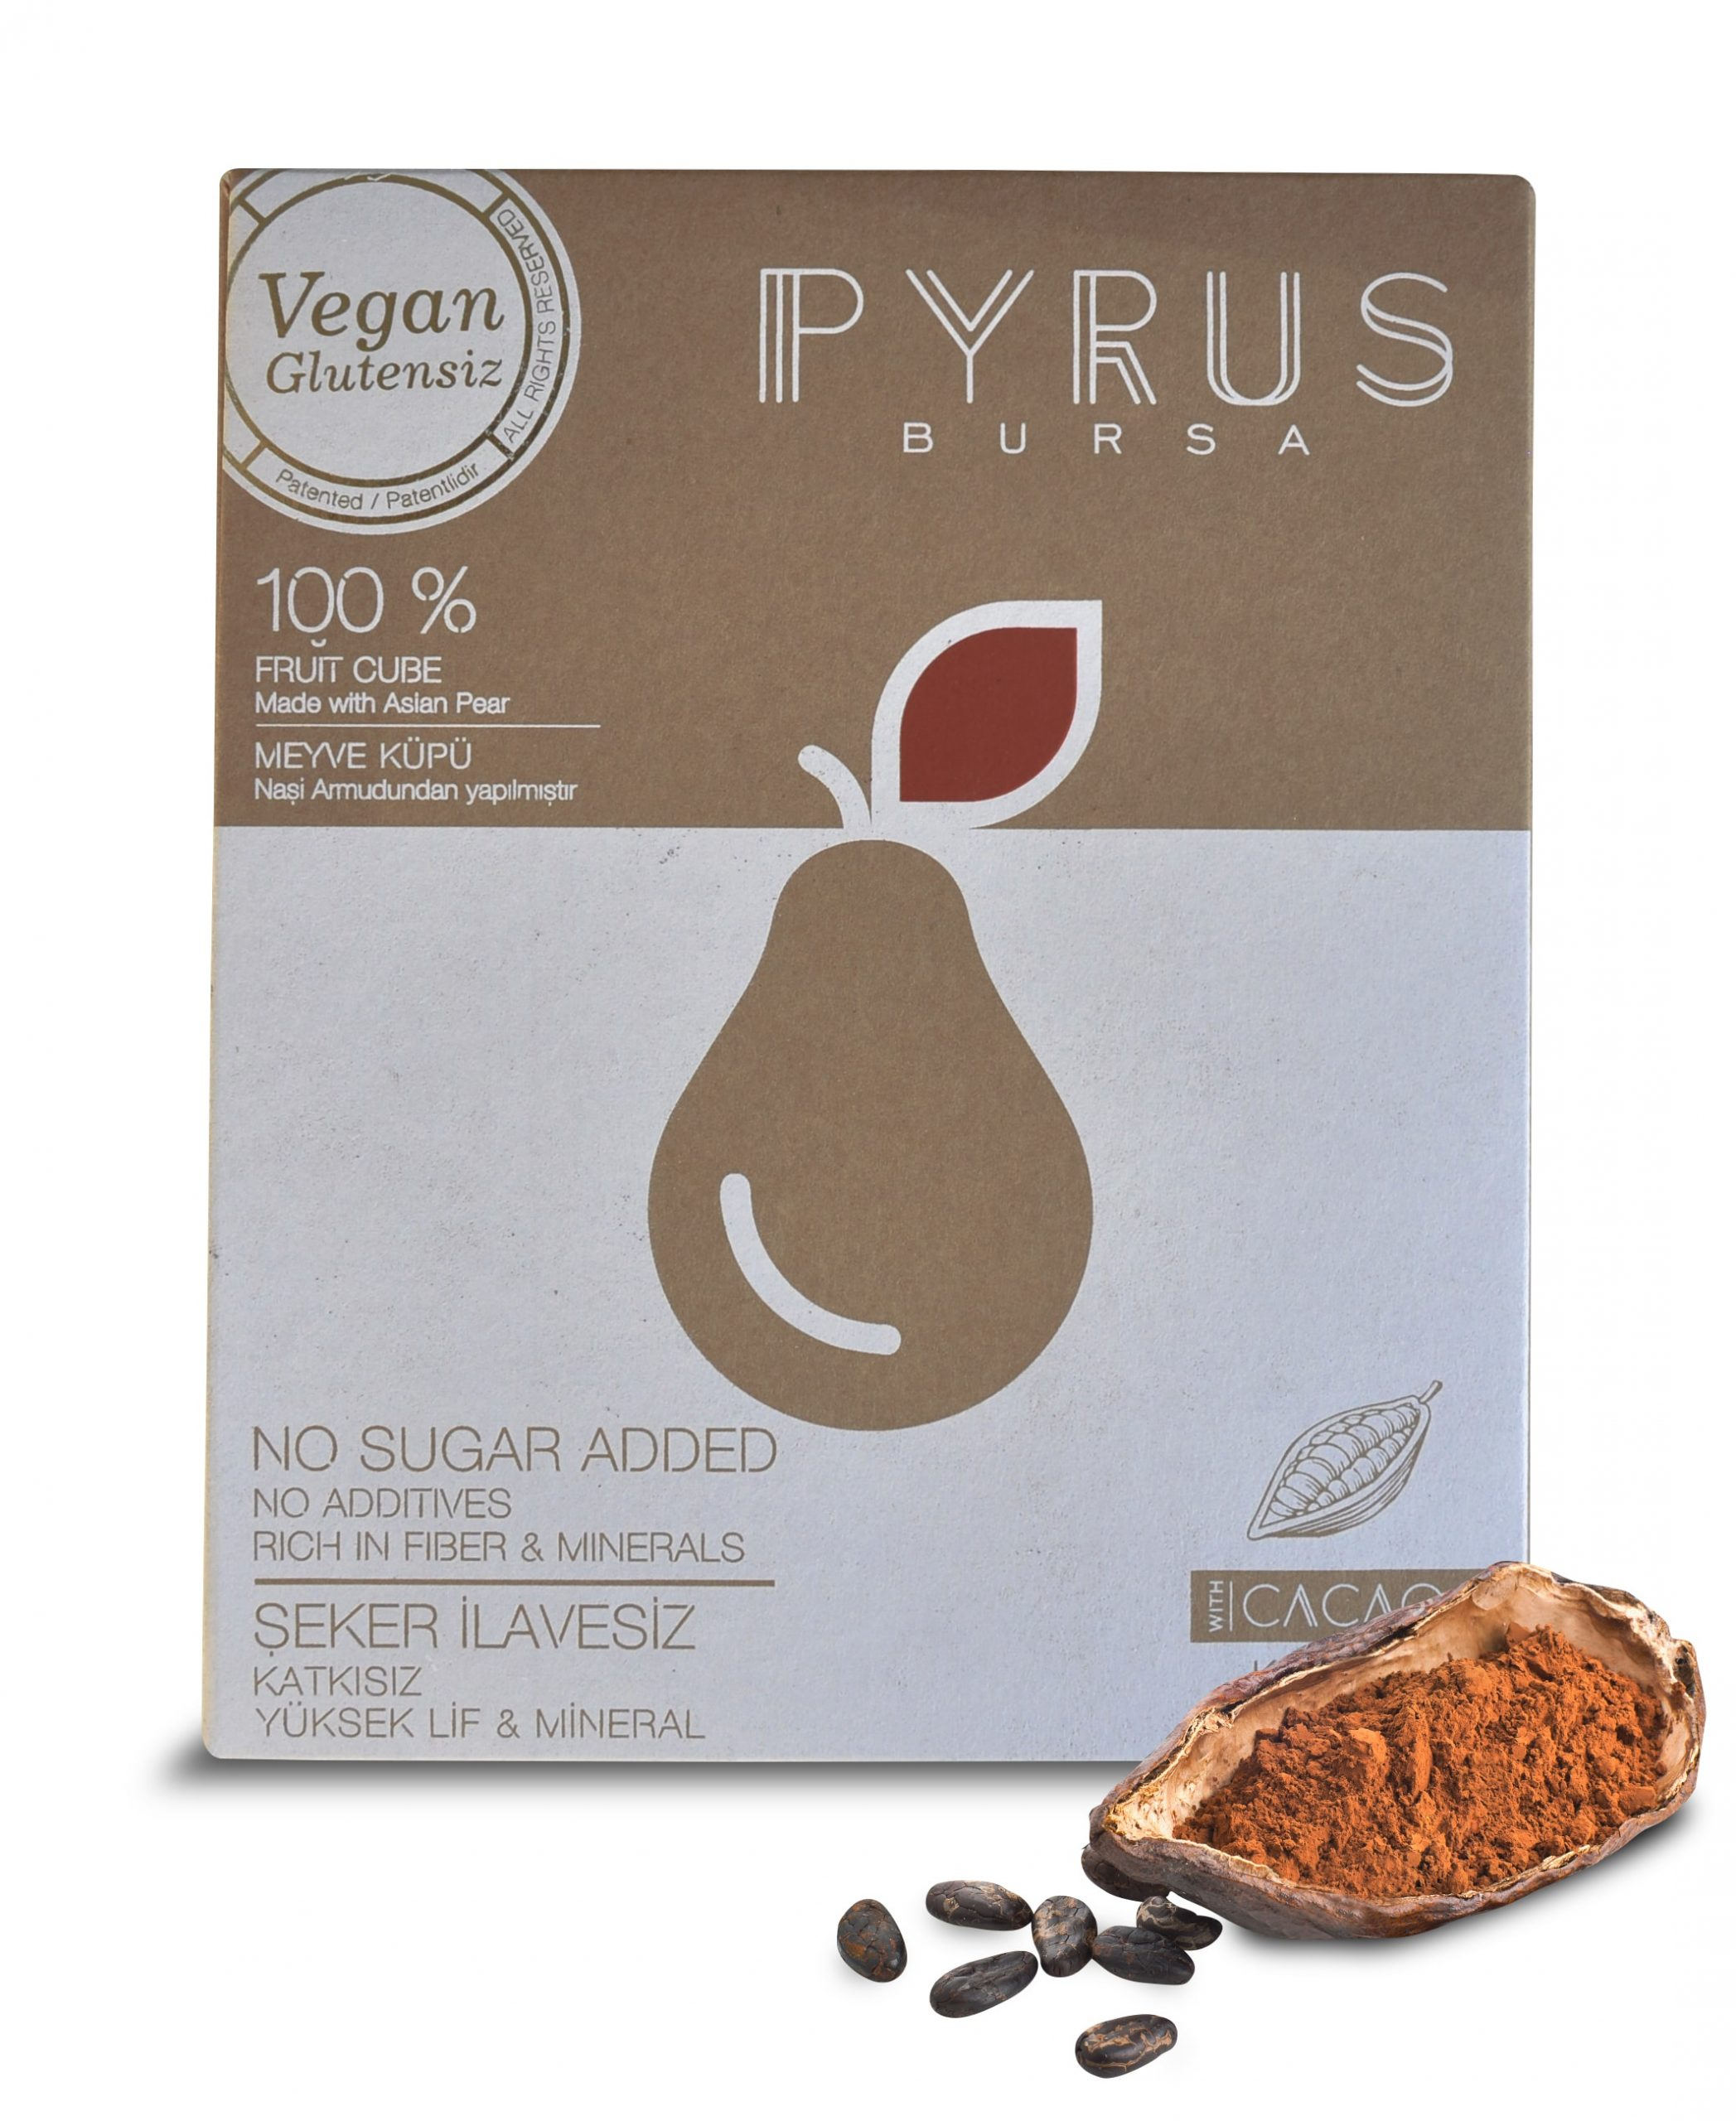 PYRUS 100% Natural Fruit Cube Delights with Cacao Flavour